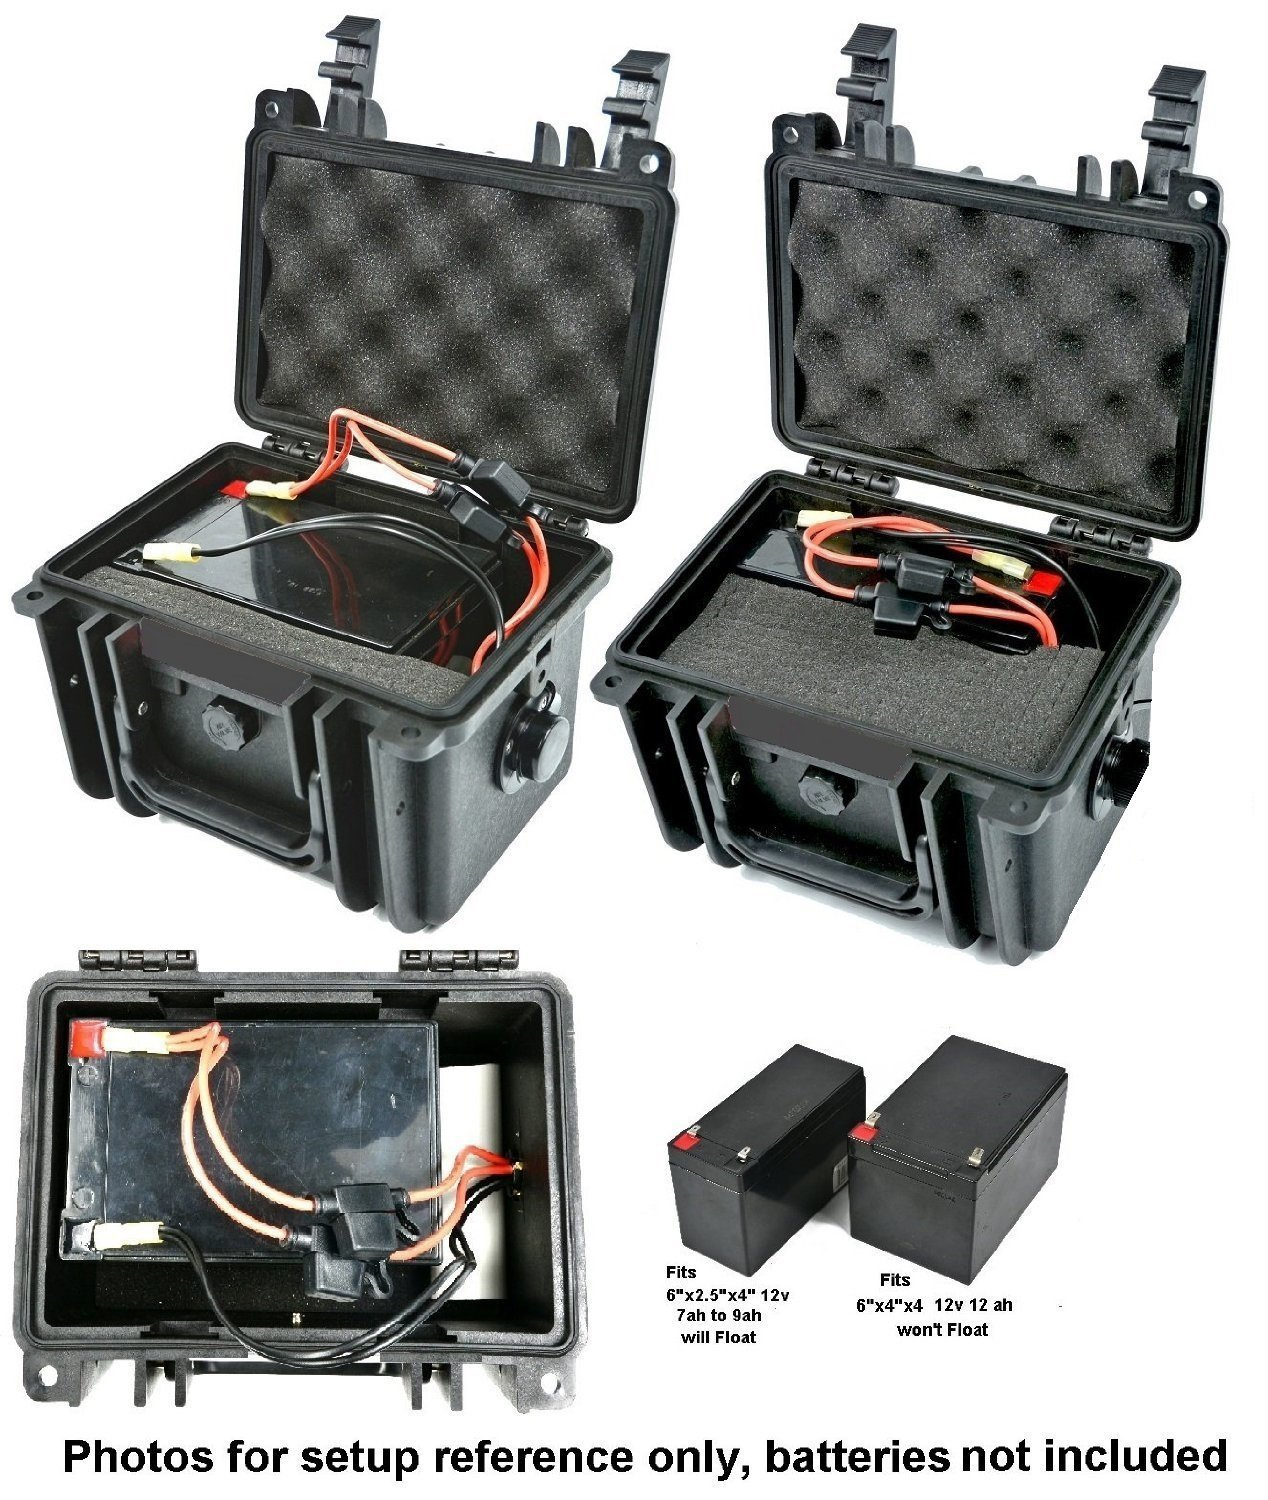 Amazon.com: Elephant K100 Custom Made Kayak Battery Box Waterproof Floating  Battery Case for Powering GPS Fish Finders Led Lights and Much More: Sports  & ...